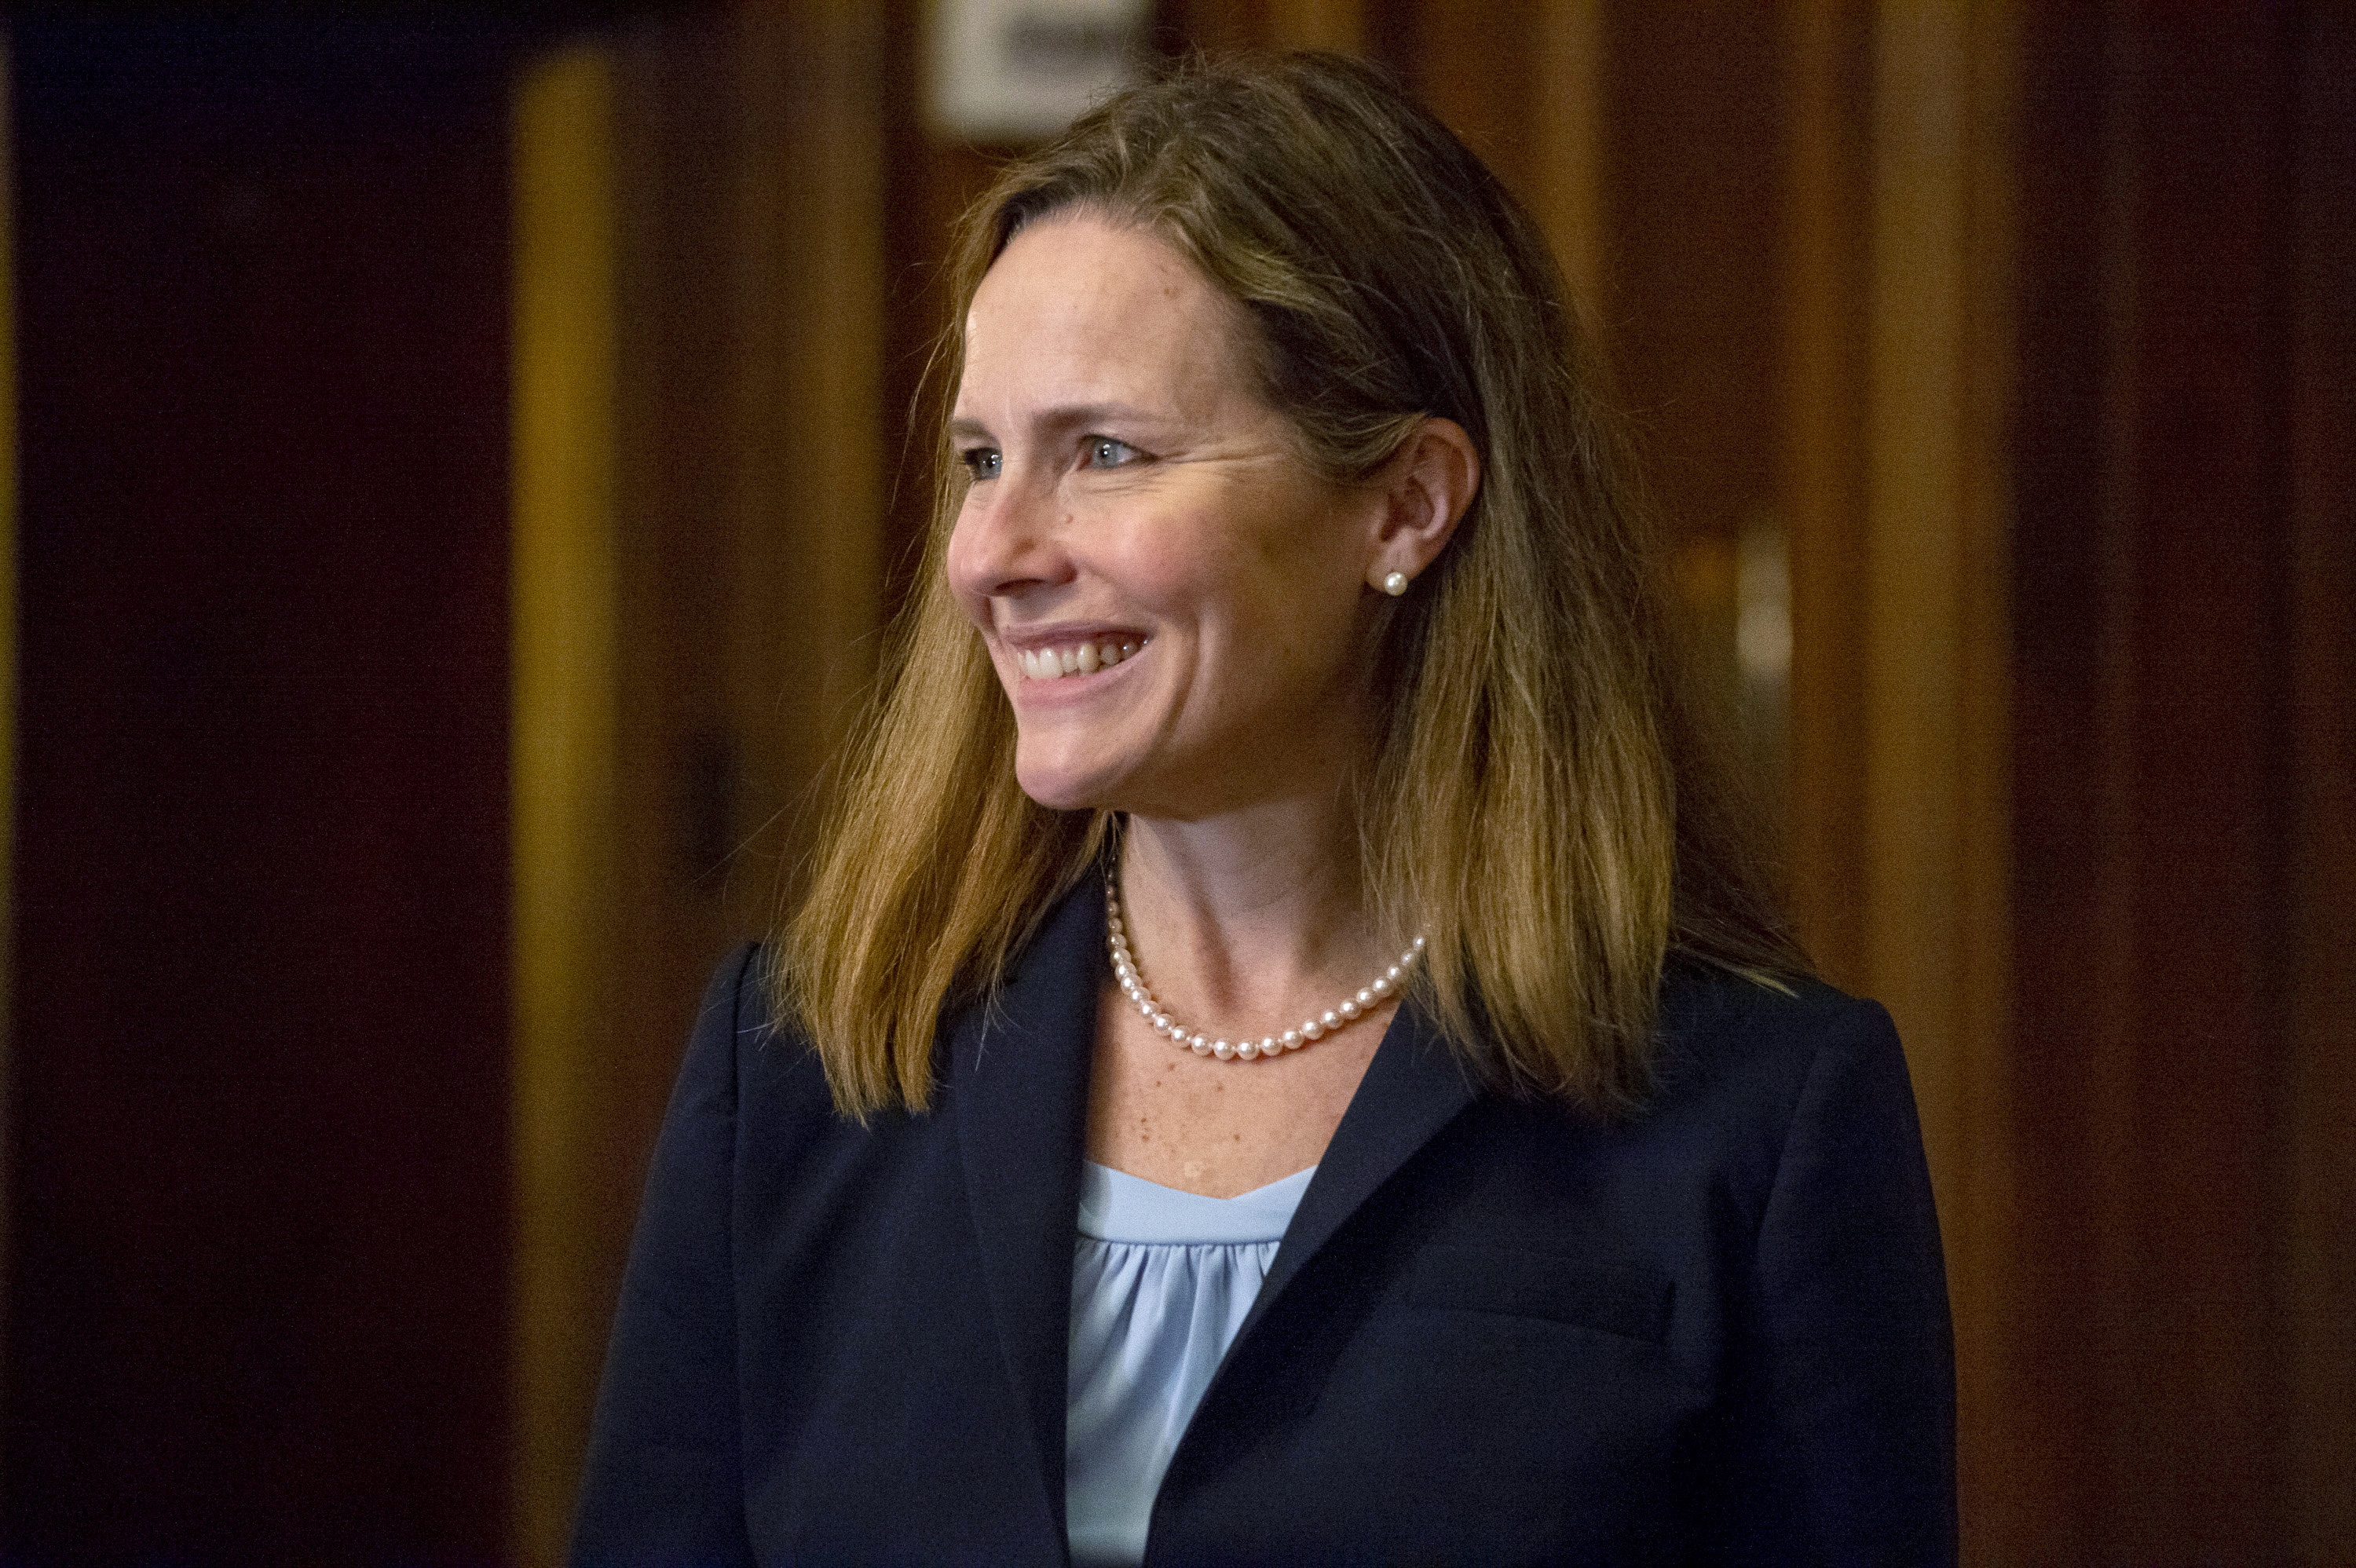 Judge Amy Coney Barrett, who is President Donald Trump's nominee for the U.S. Supreme Court, attends meetings with senators on Capitol Hill in Washington, Wednesday, Sept. 30, 2020. (AP)